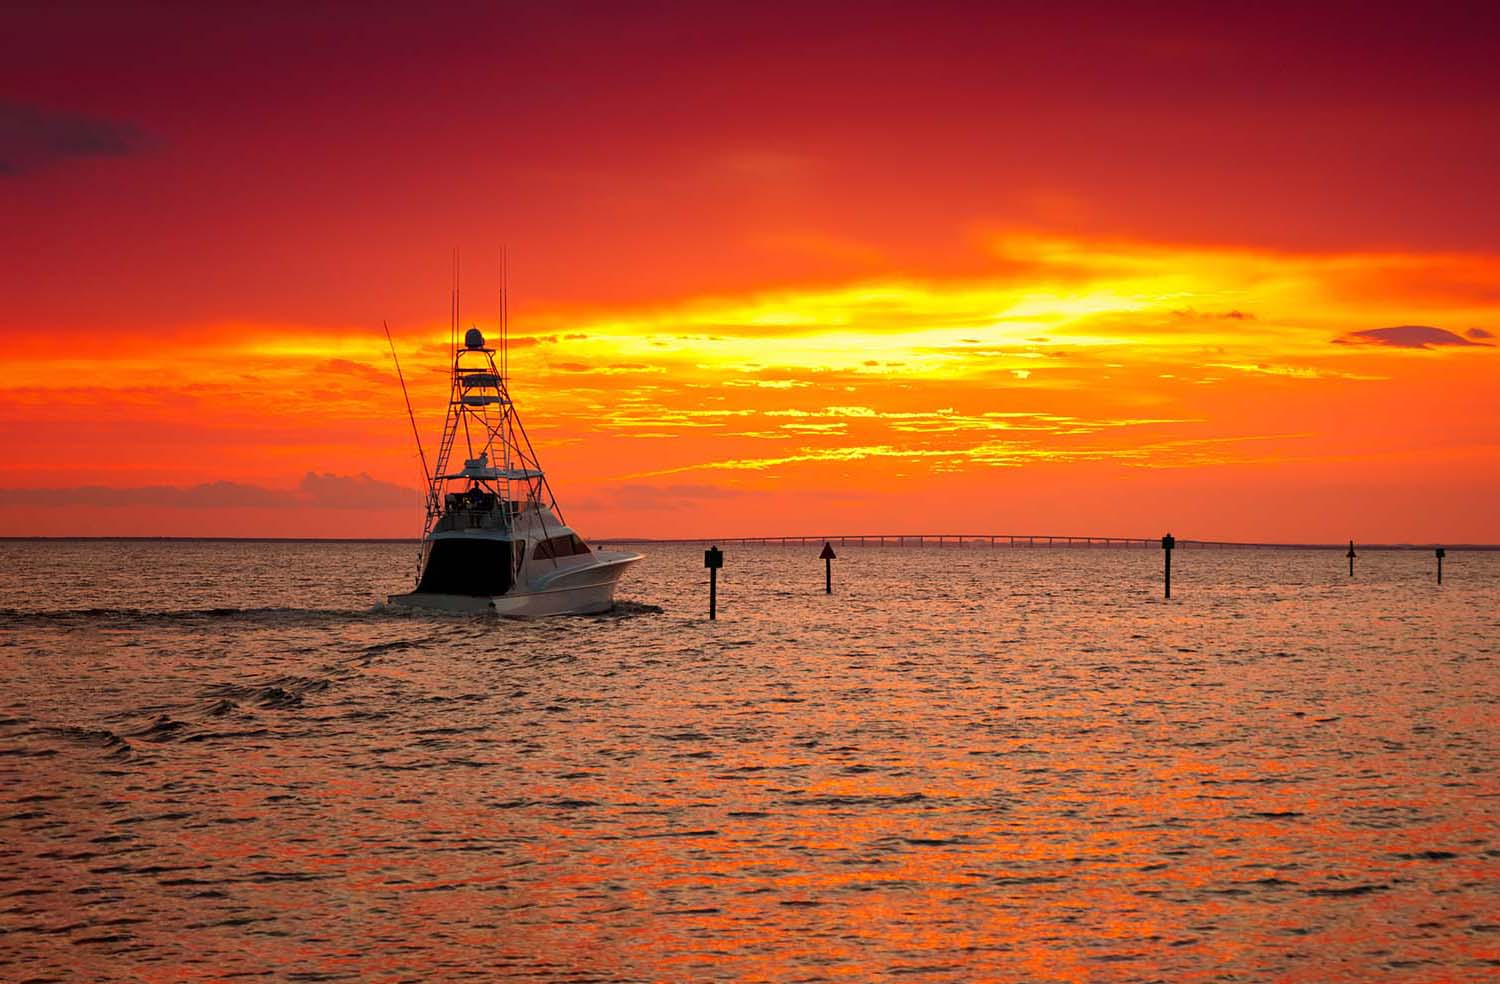 A fishing boat headed toward sunset under a red sky.